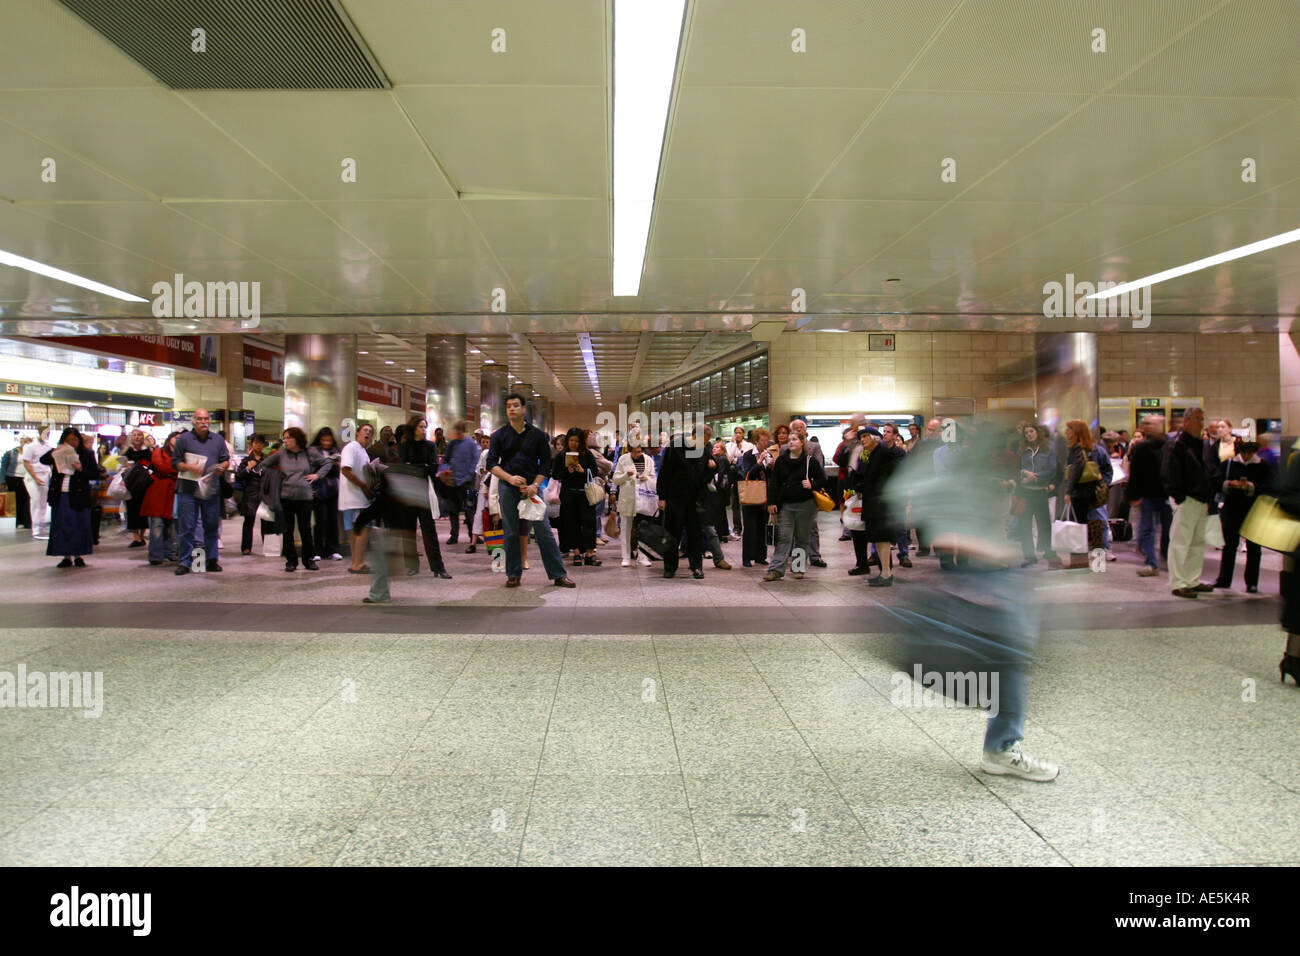 people standing in waiting area of penn station looking up at train